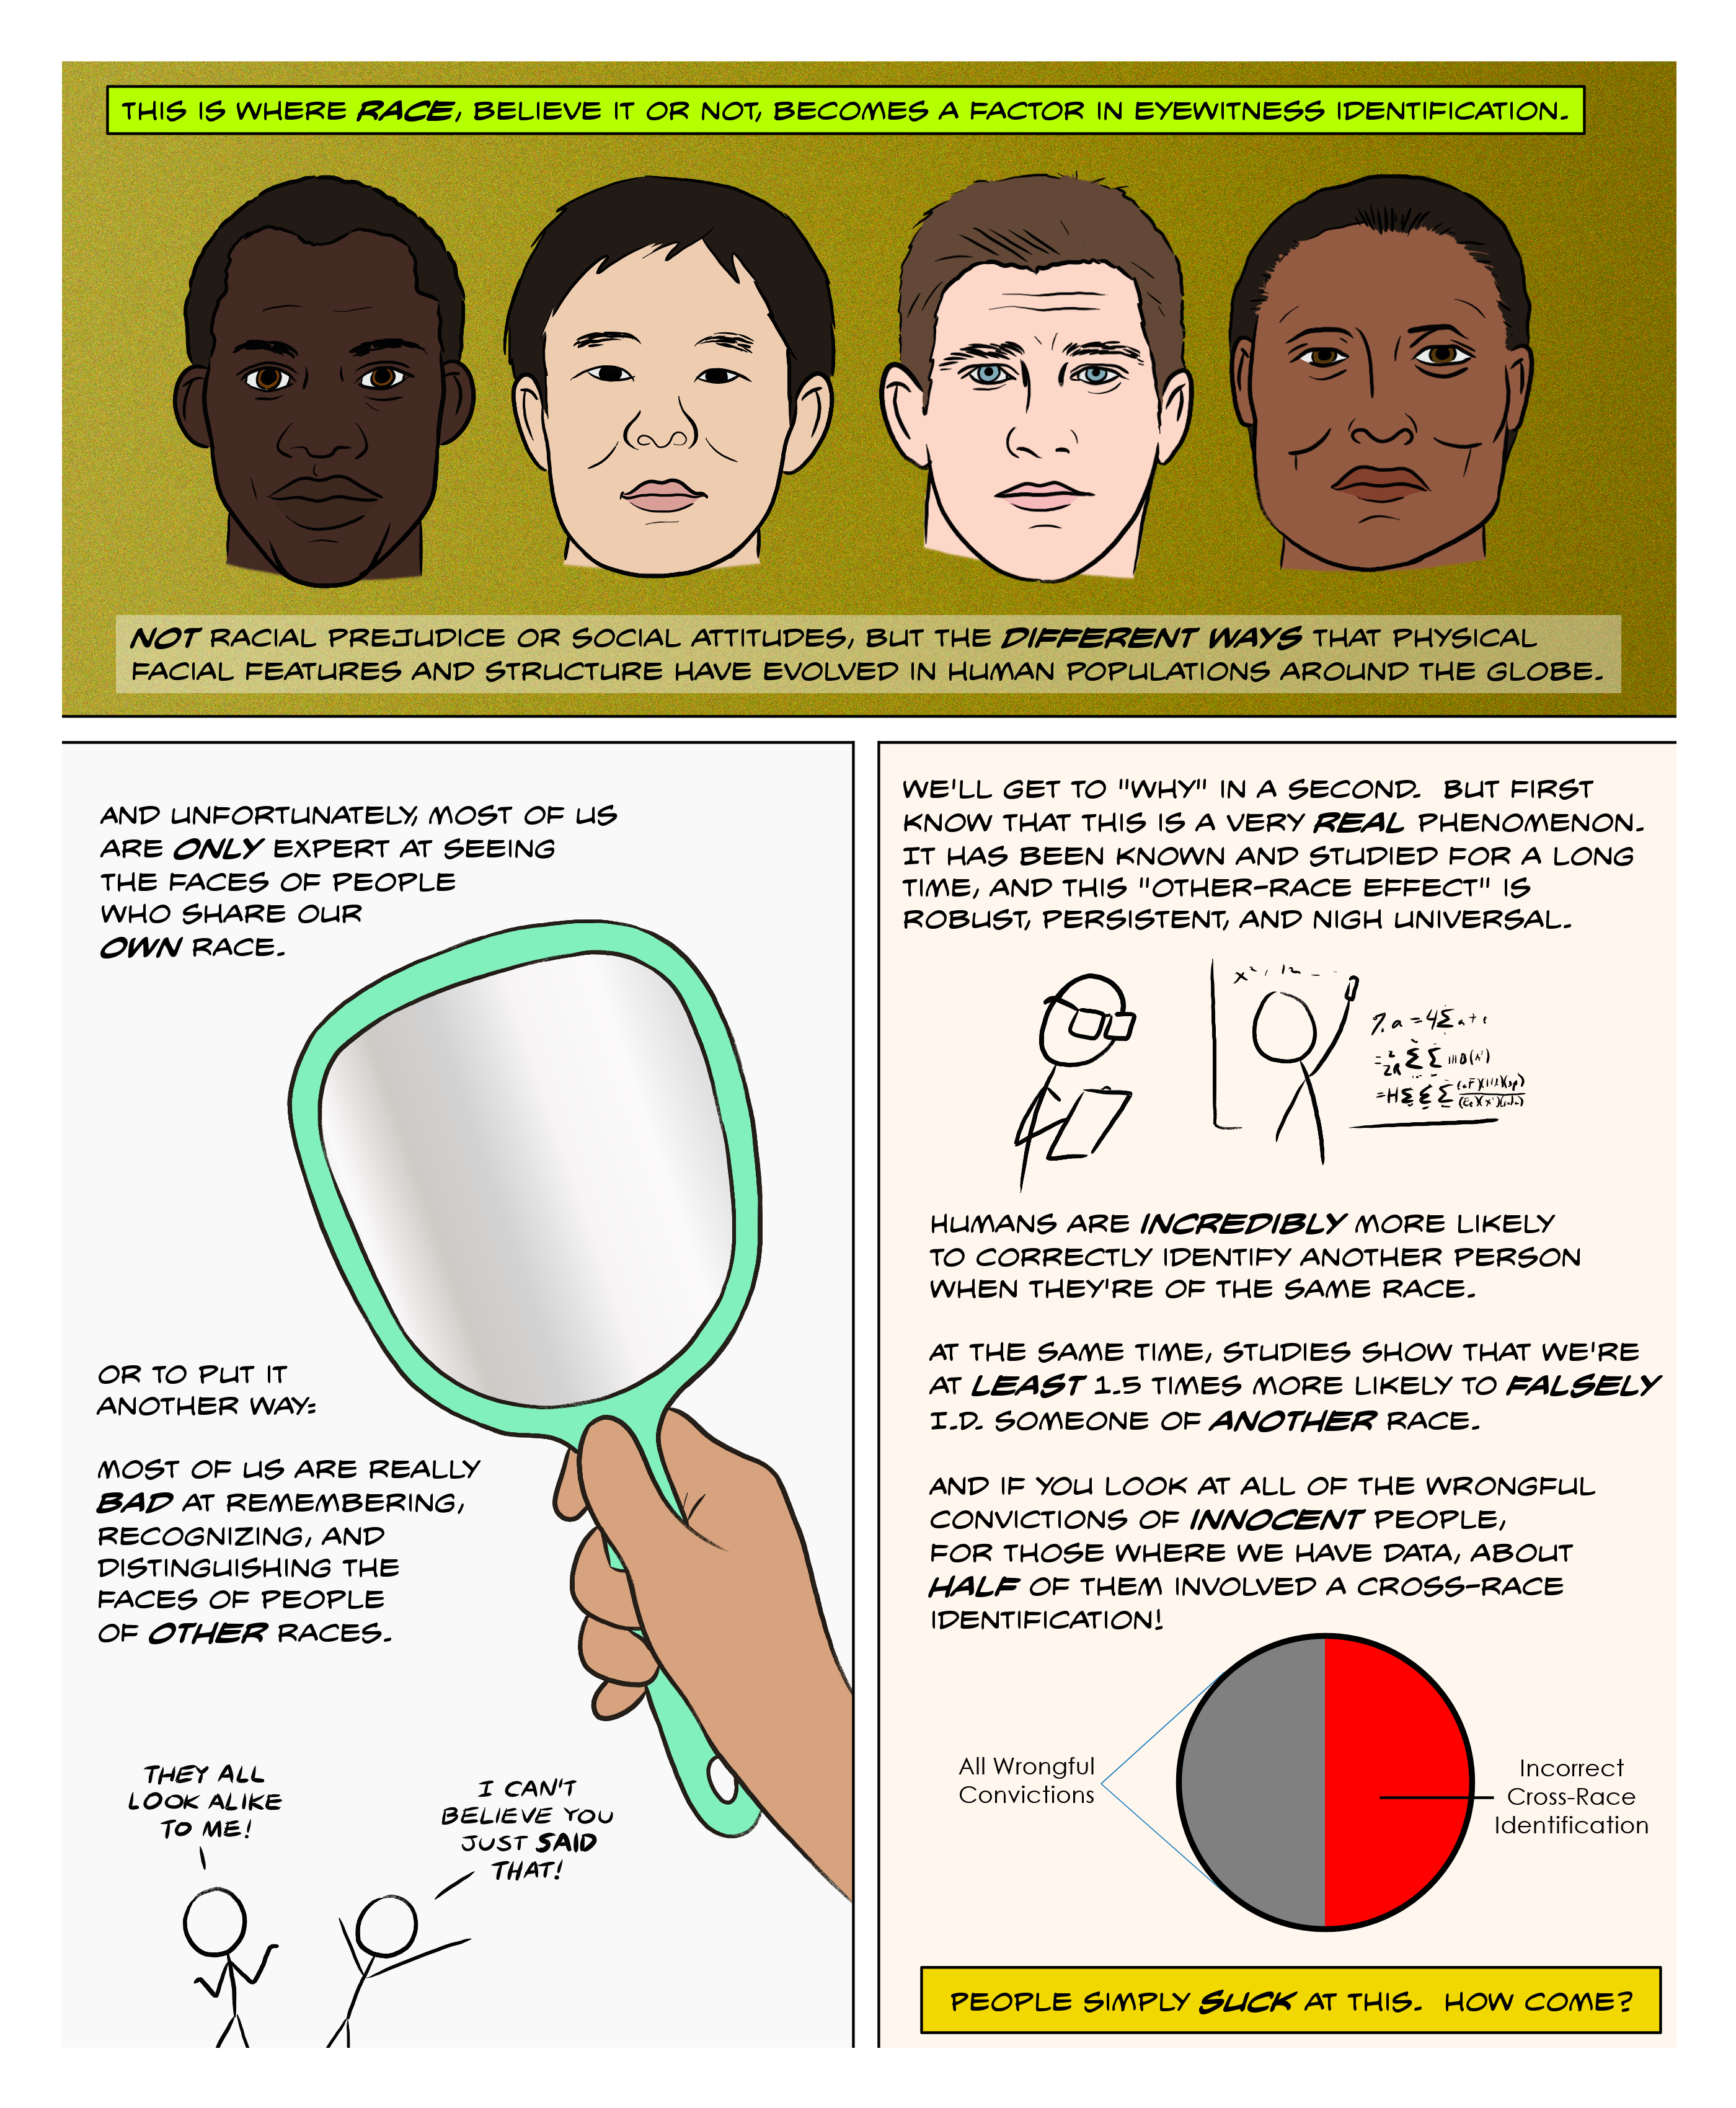 Unfortunately, most of us are terrible at recognizing faces of other races. This other-race or cross-race effect has been studied for a long time, and the effect is robust, persistent, and nigh universal. Humans are incredibly more likely to correctly identify another person of the same race, and at least 150% more likely to falsely identify someone of another race. About half of all wrongful convictions of innocent people involved a cross-race identification.